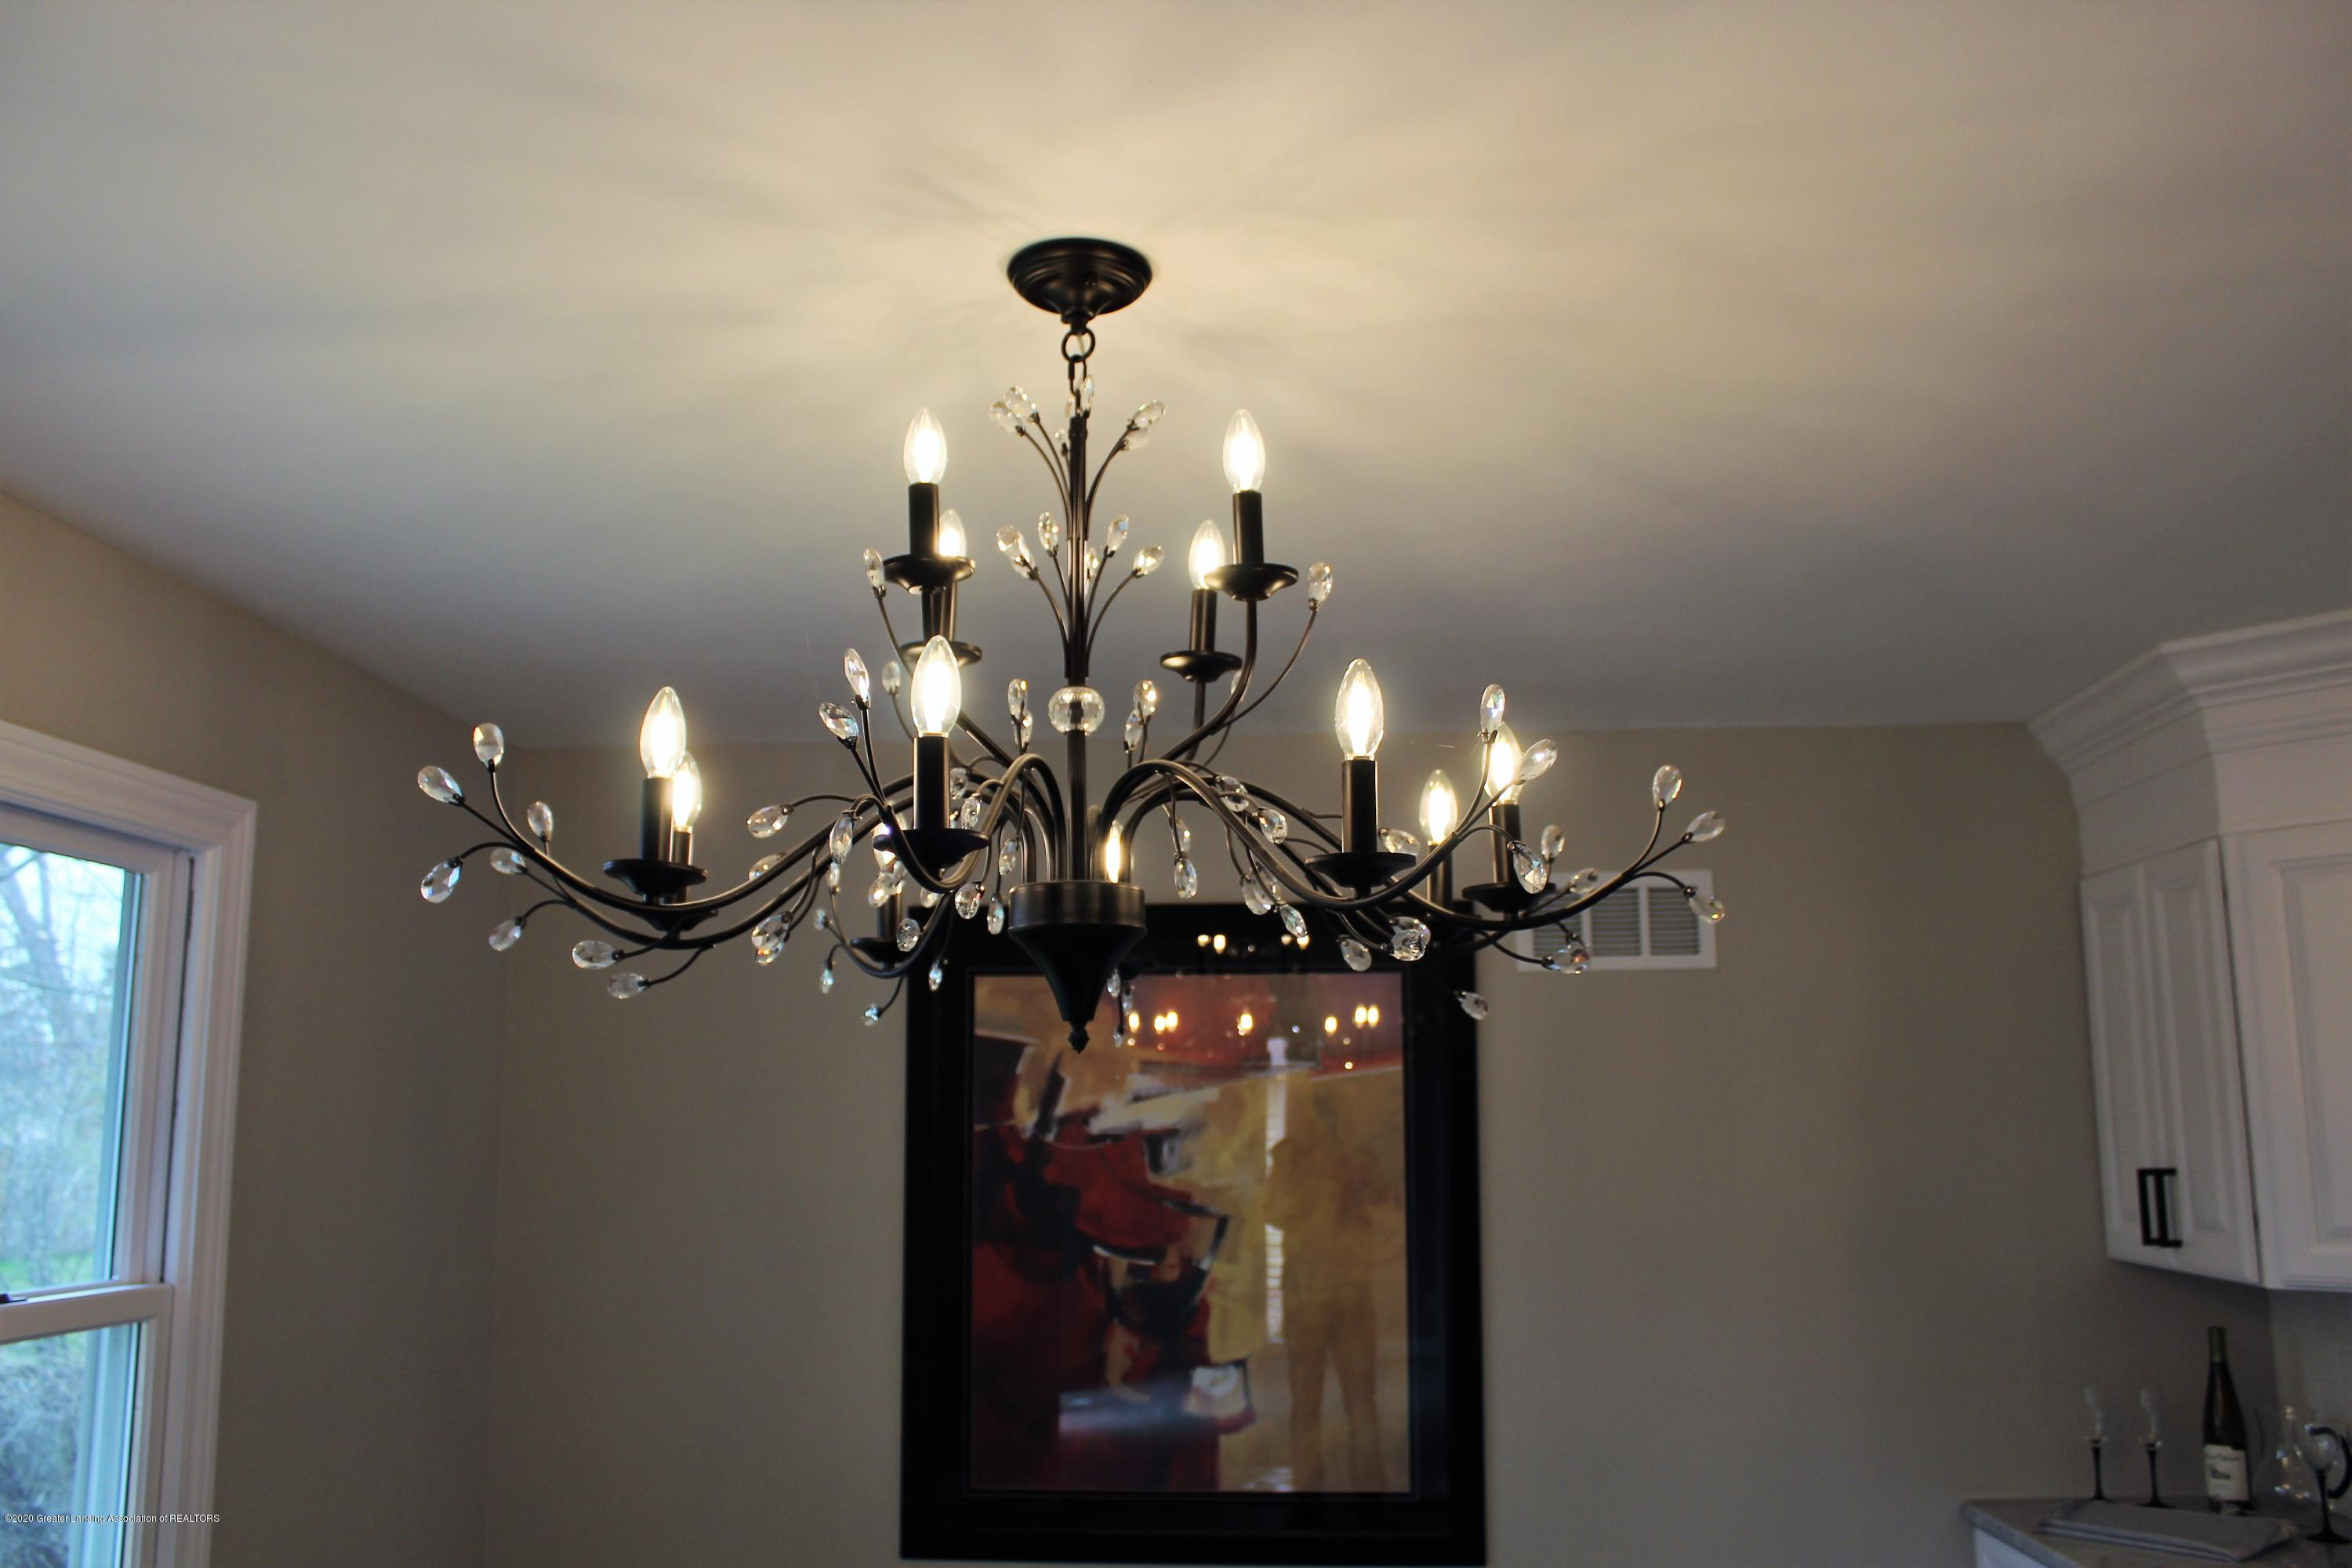 984 Whittier Dr - DINING CHANDALIER - 36